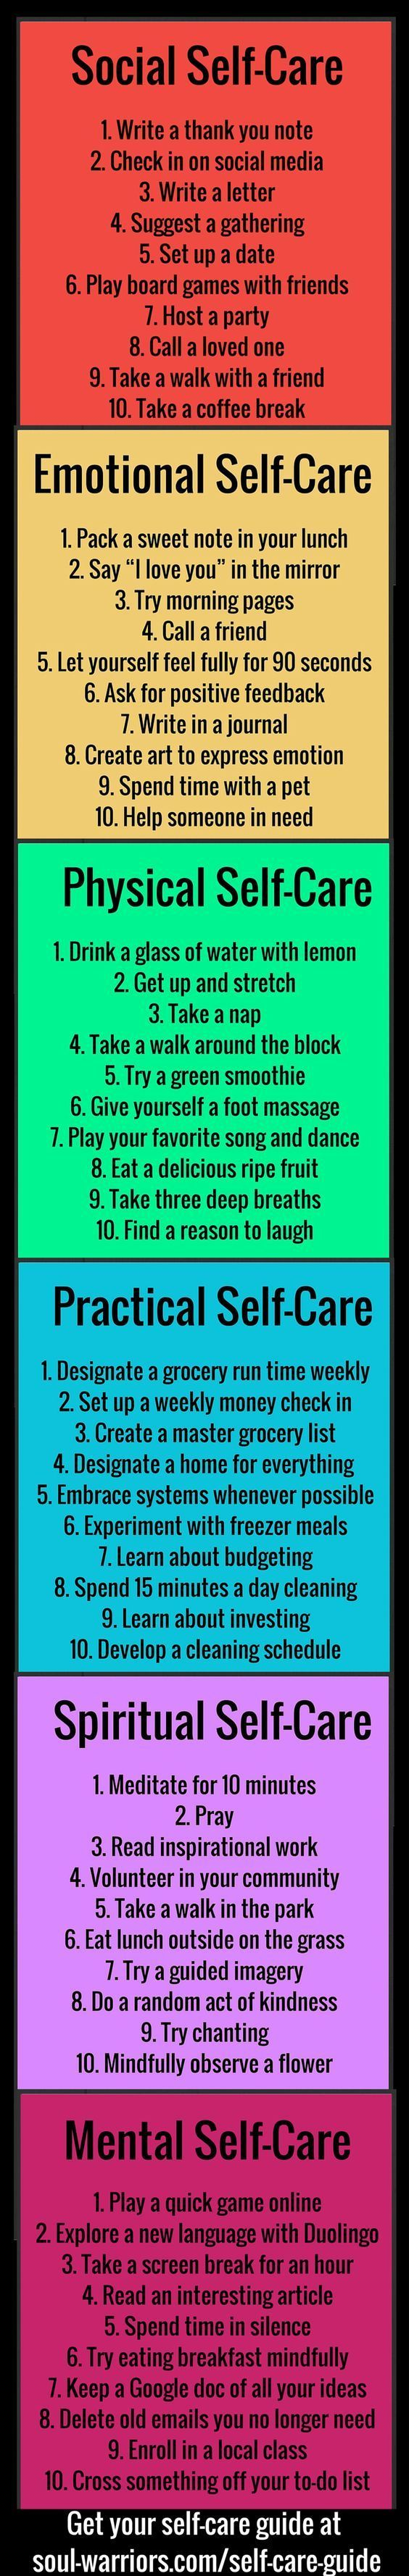 Self care tips for all aspects of your life. Write your own. Set goals. Use them for moving forward, changing and for coping skills when under pressure.: